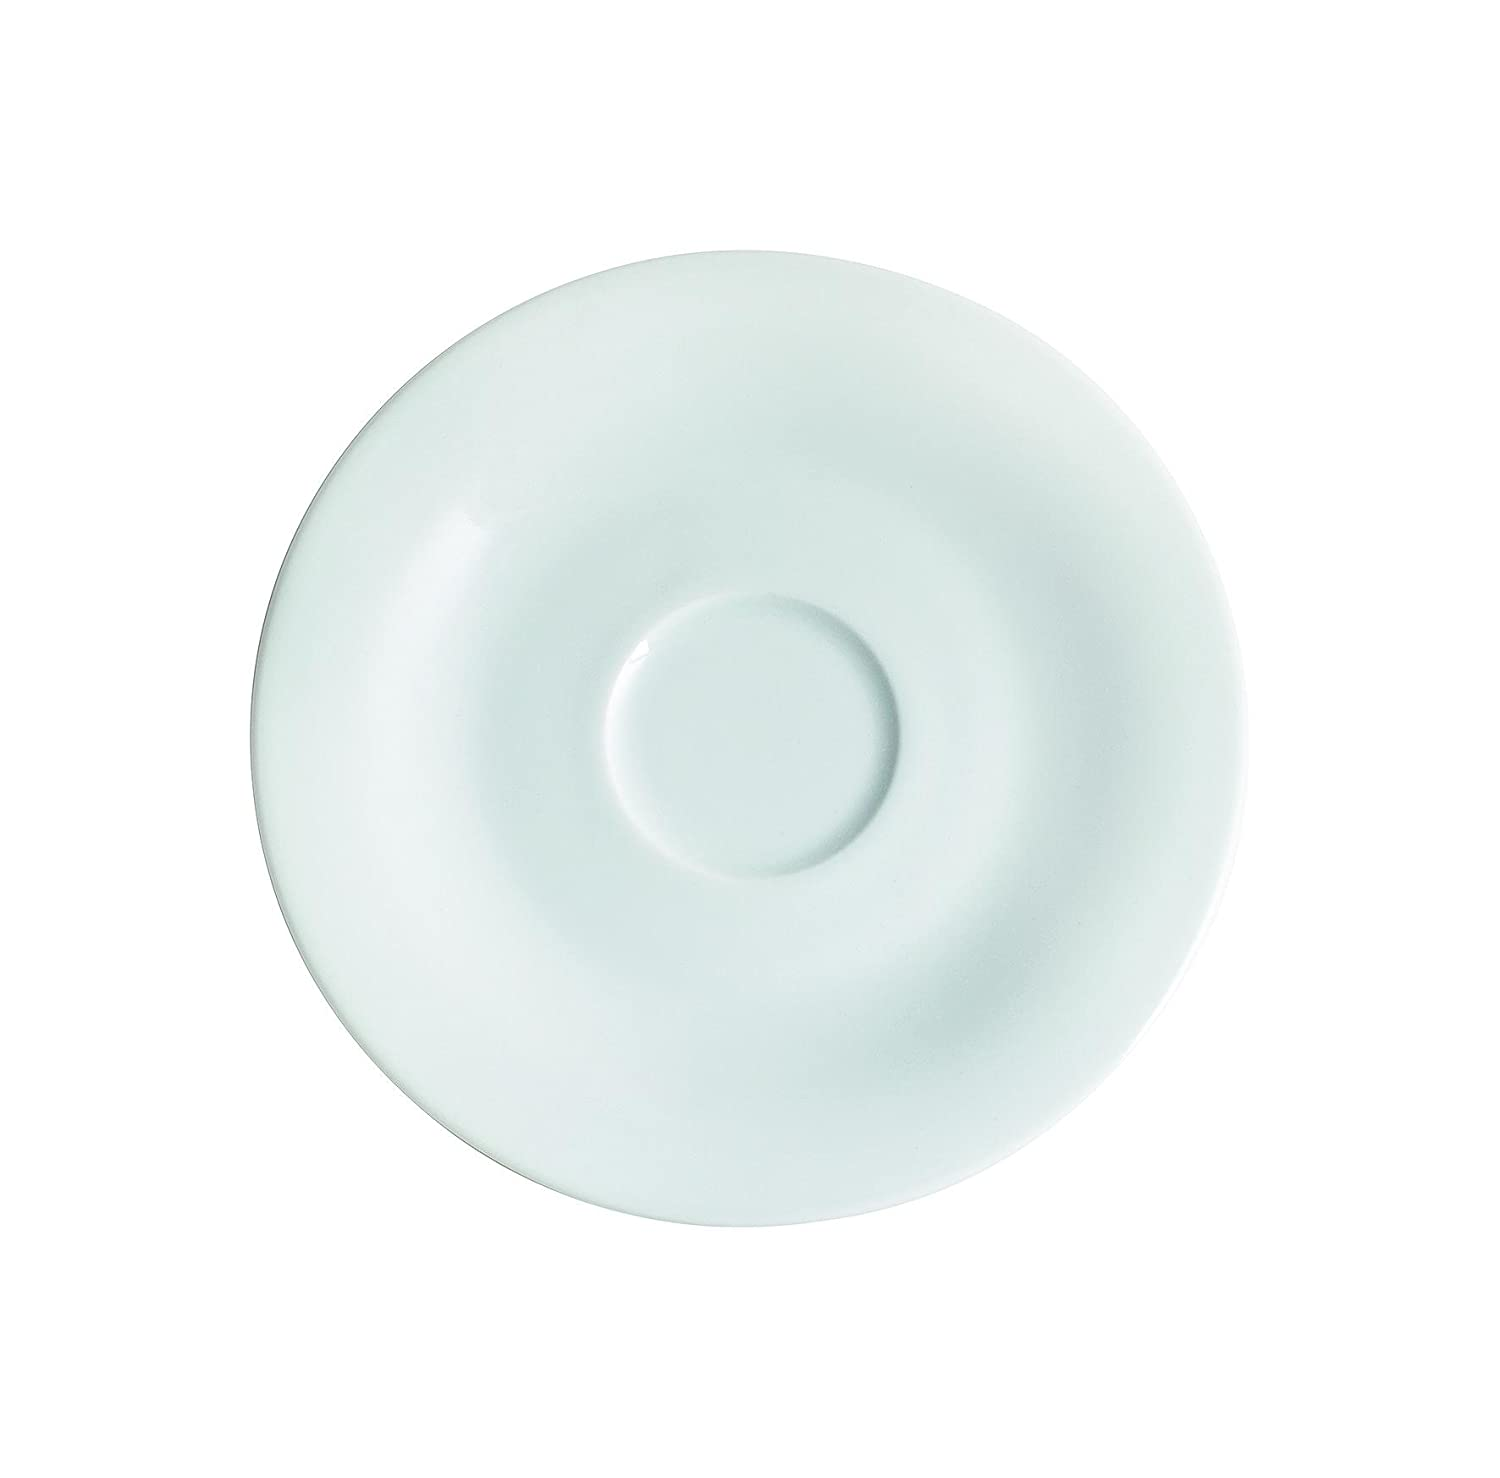 Kahla Pronto Saucer for Cups, Saucer, Cup Saucer, Underplate, Ø 12 cm, White, 203501A90020C Ø 12 cm